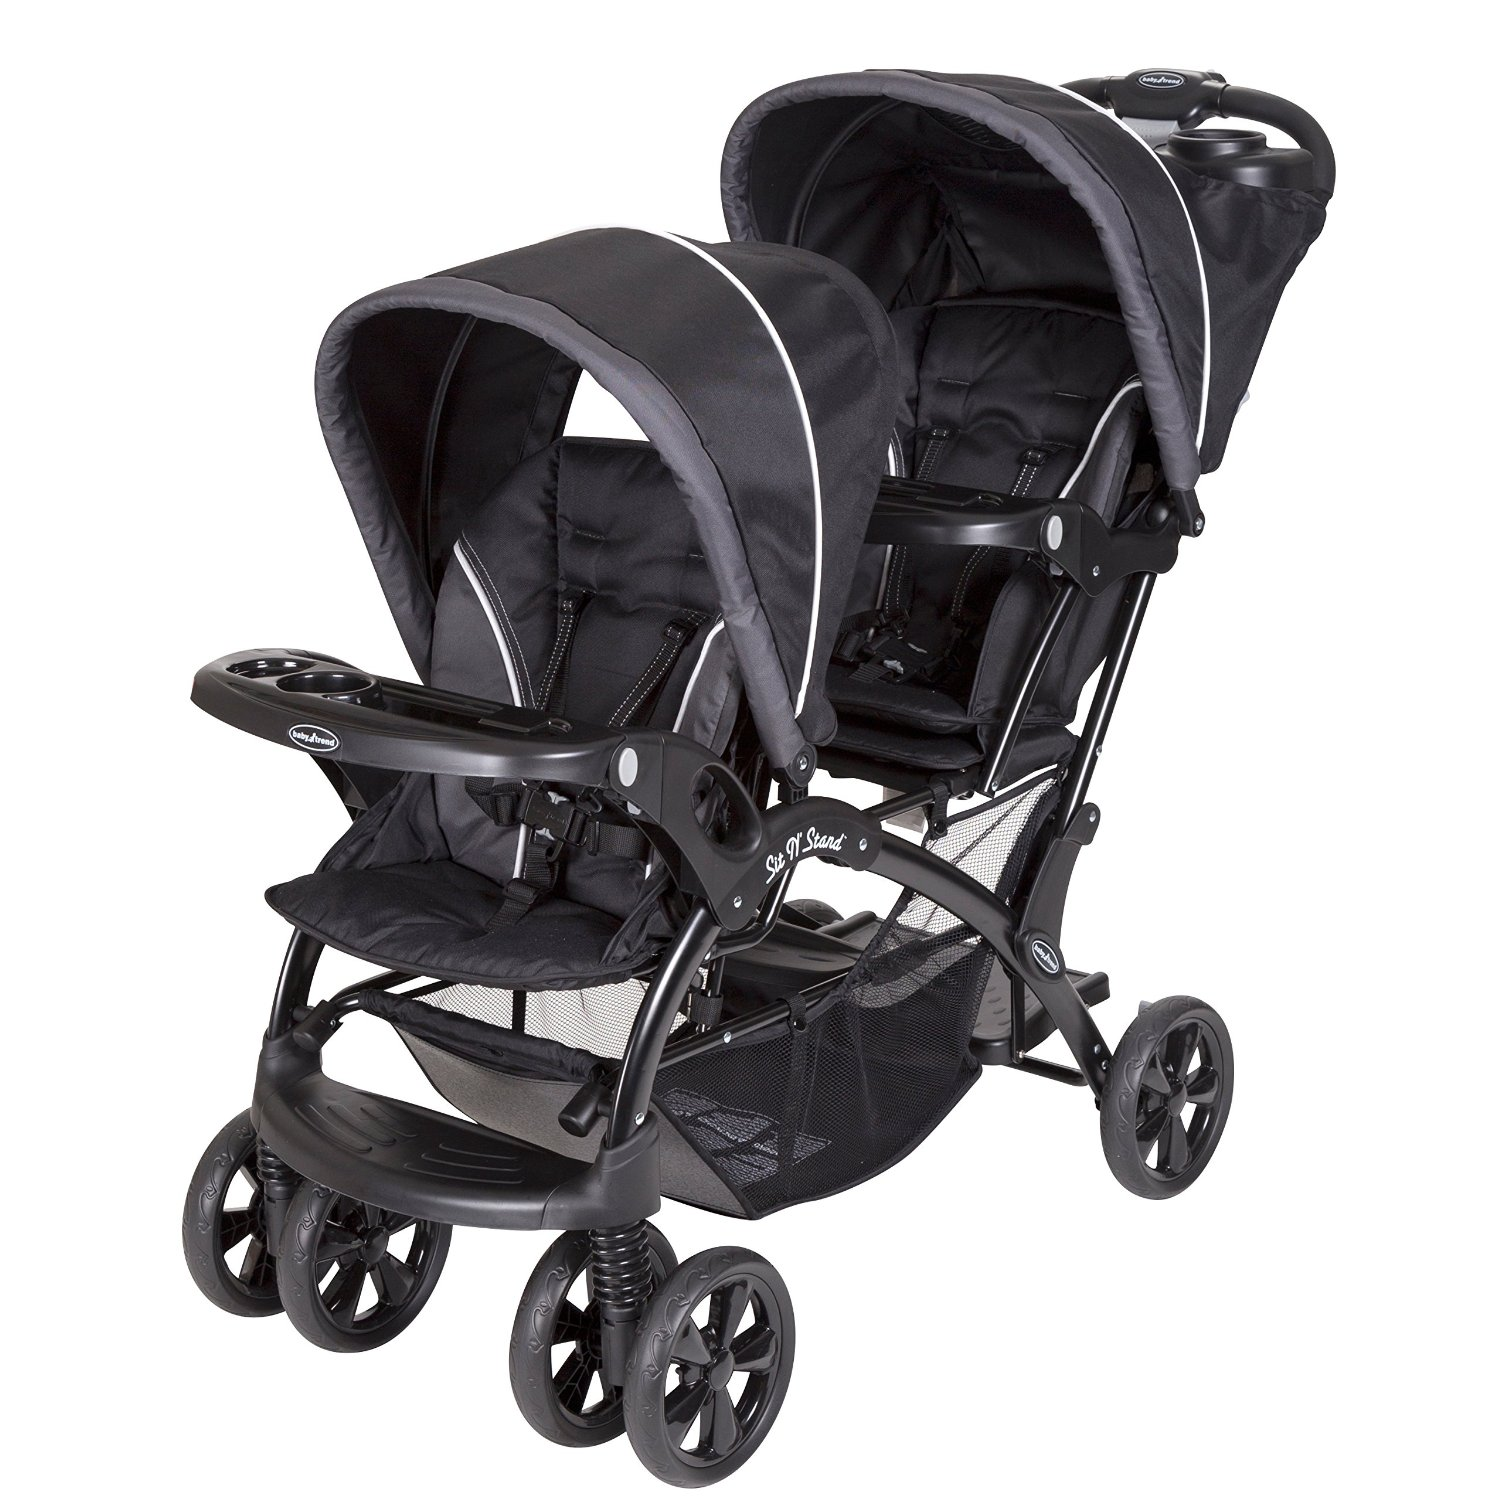 Baby Trend Sit N' Stand Double Stroller - Onyx